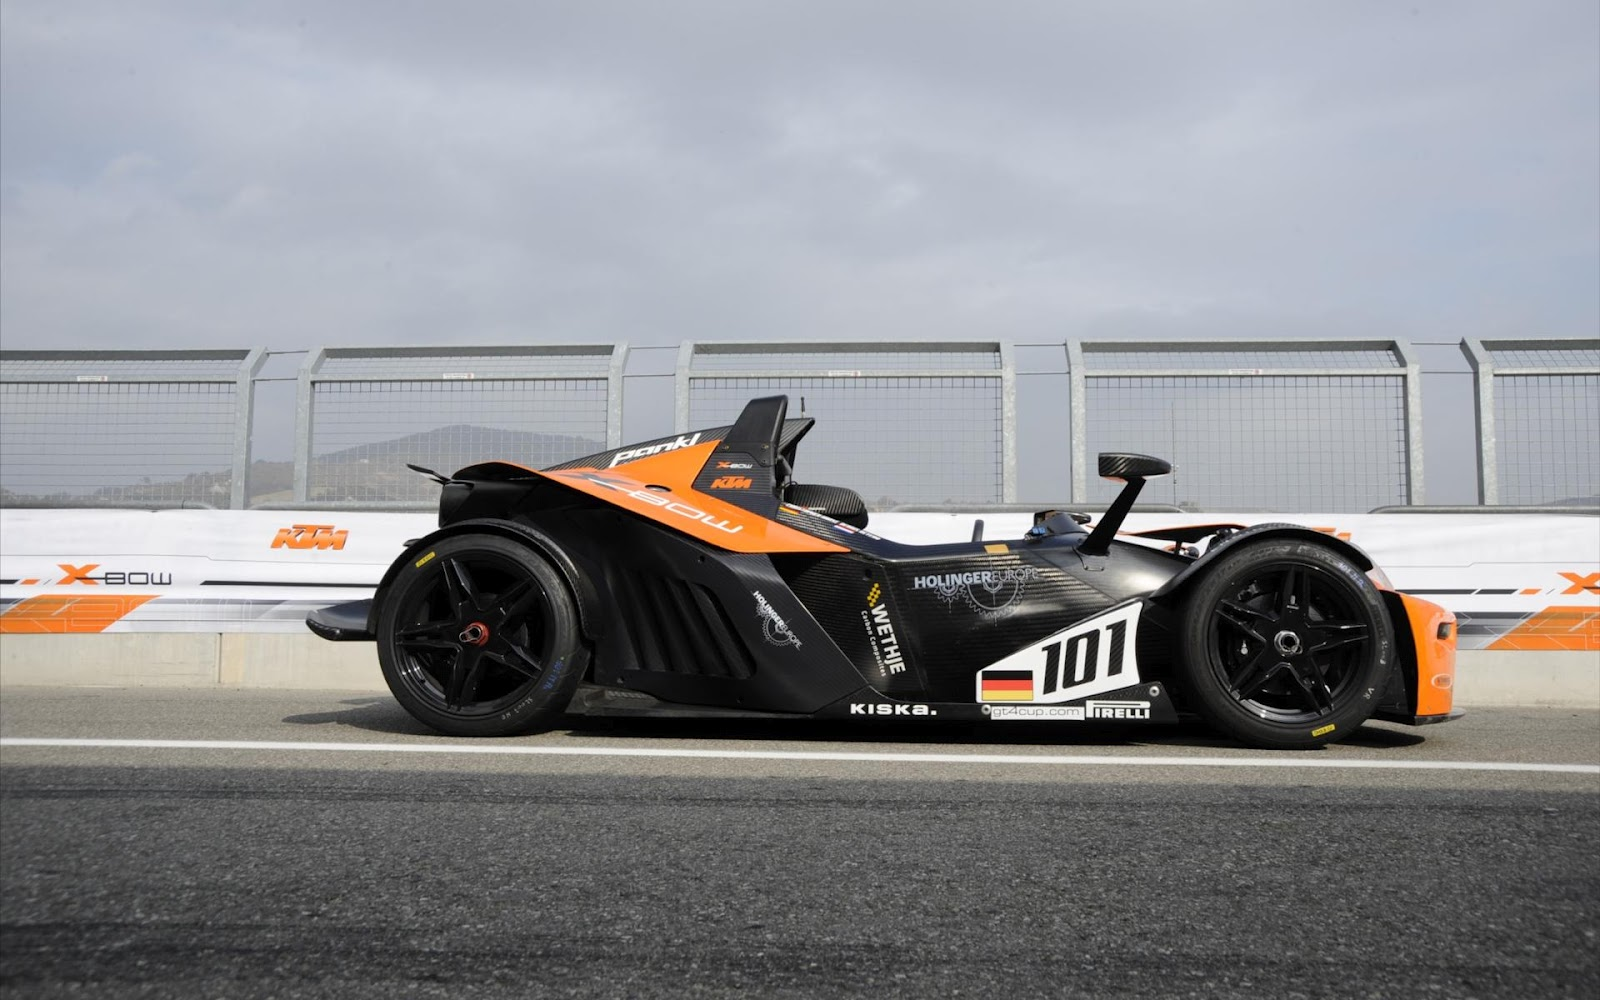 wallpapers of beautiful cars ktm x bow aka ktm crossbow. Black Bedroom Furniture Sets. Home Design Ideas